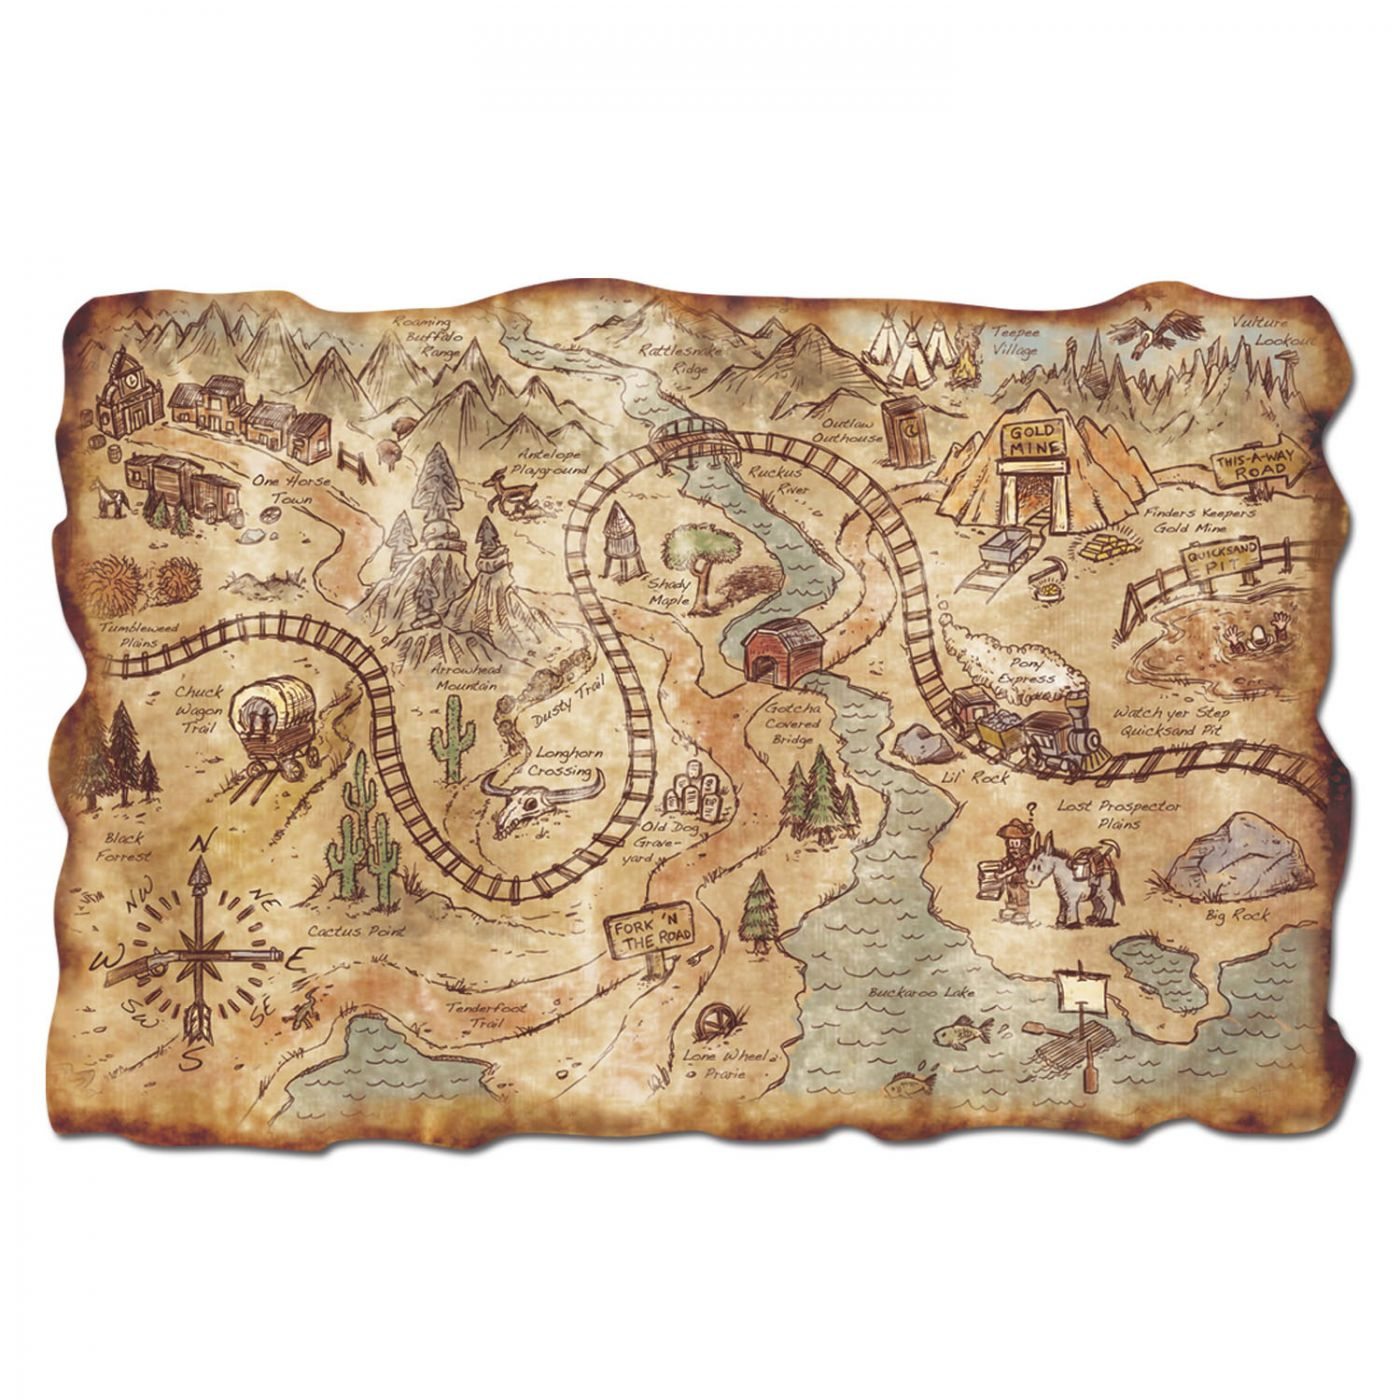 Plastic Gold Mine Treasure Map image